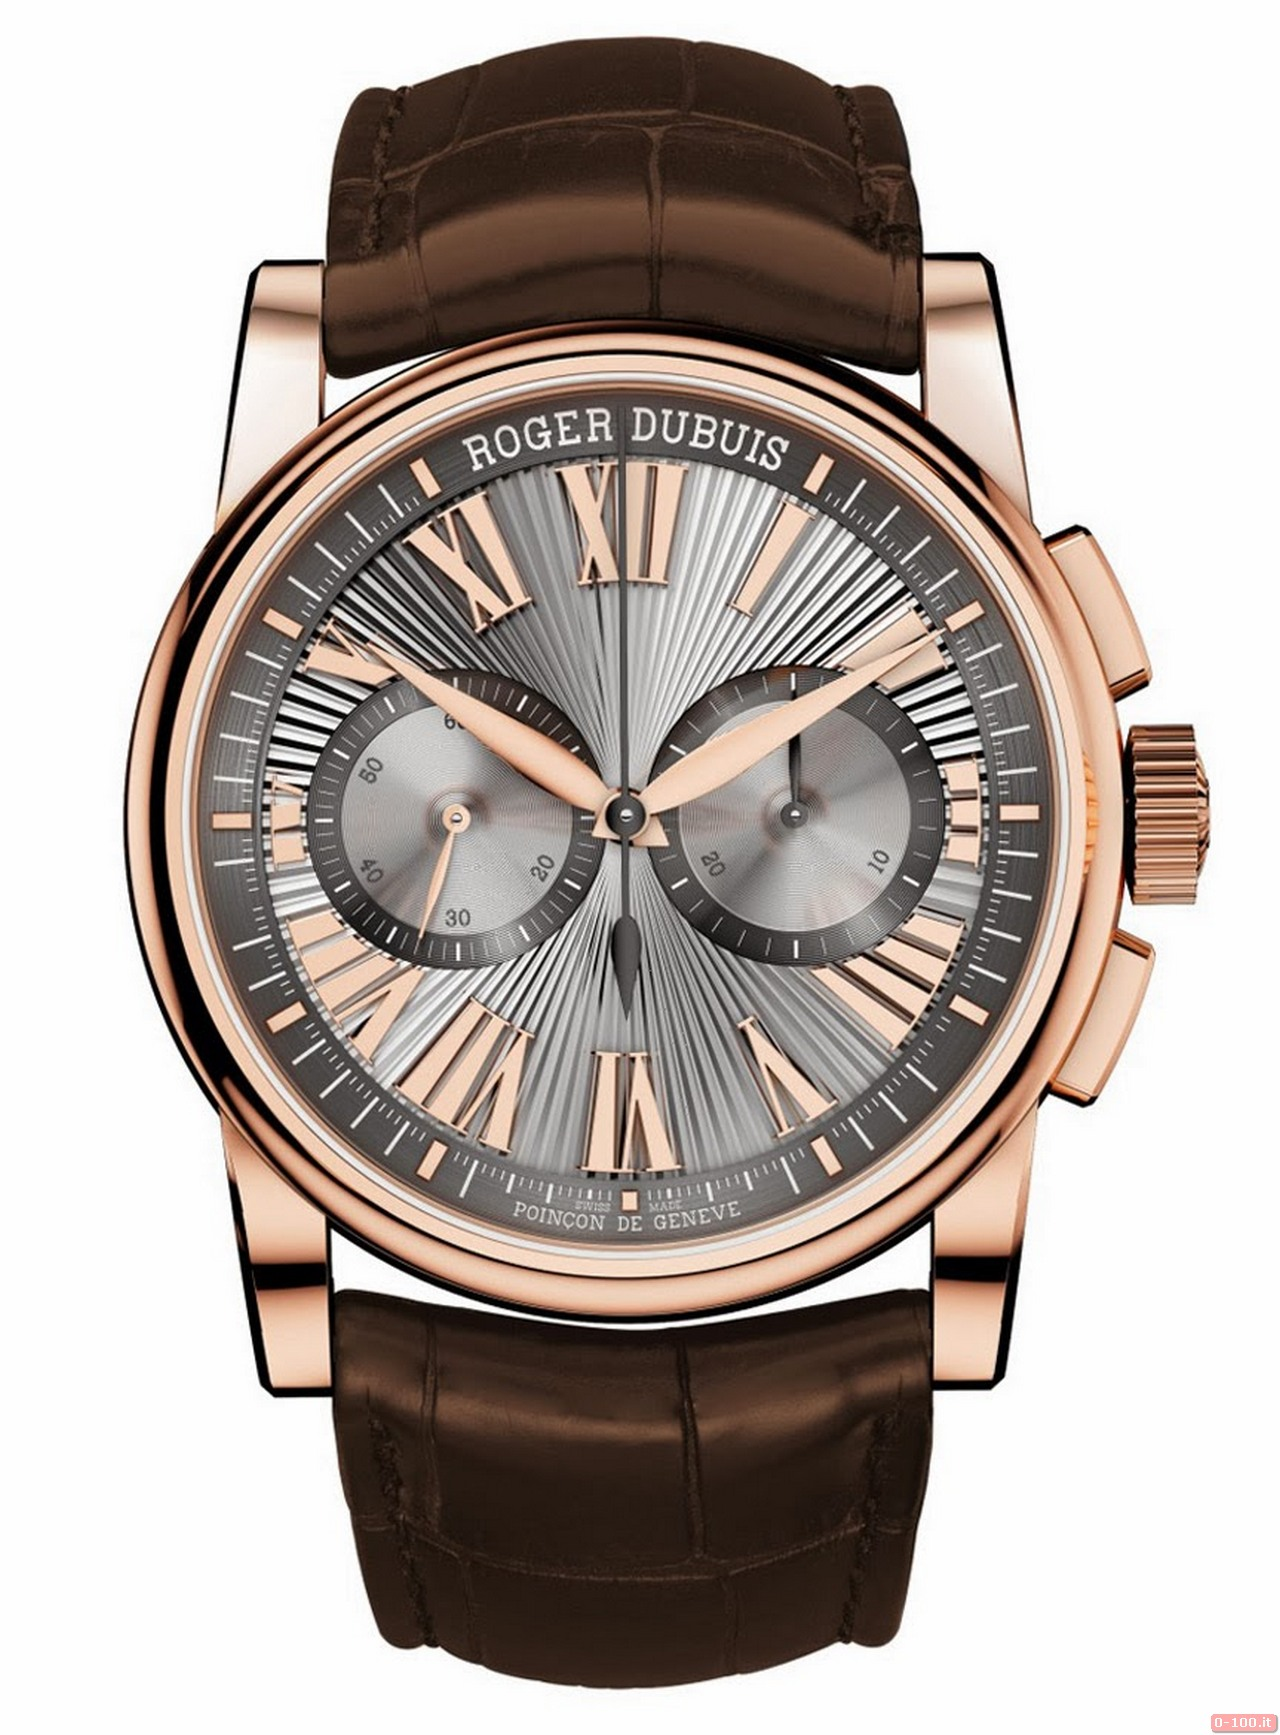 anteprima-sihh-2014-roger-dubuis-collezione-hommage-0-100_2